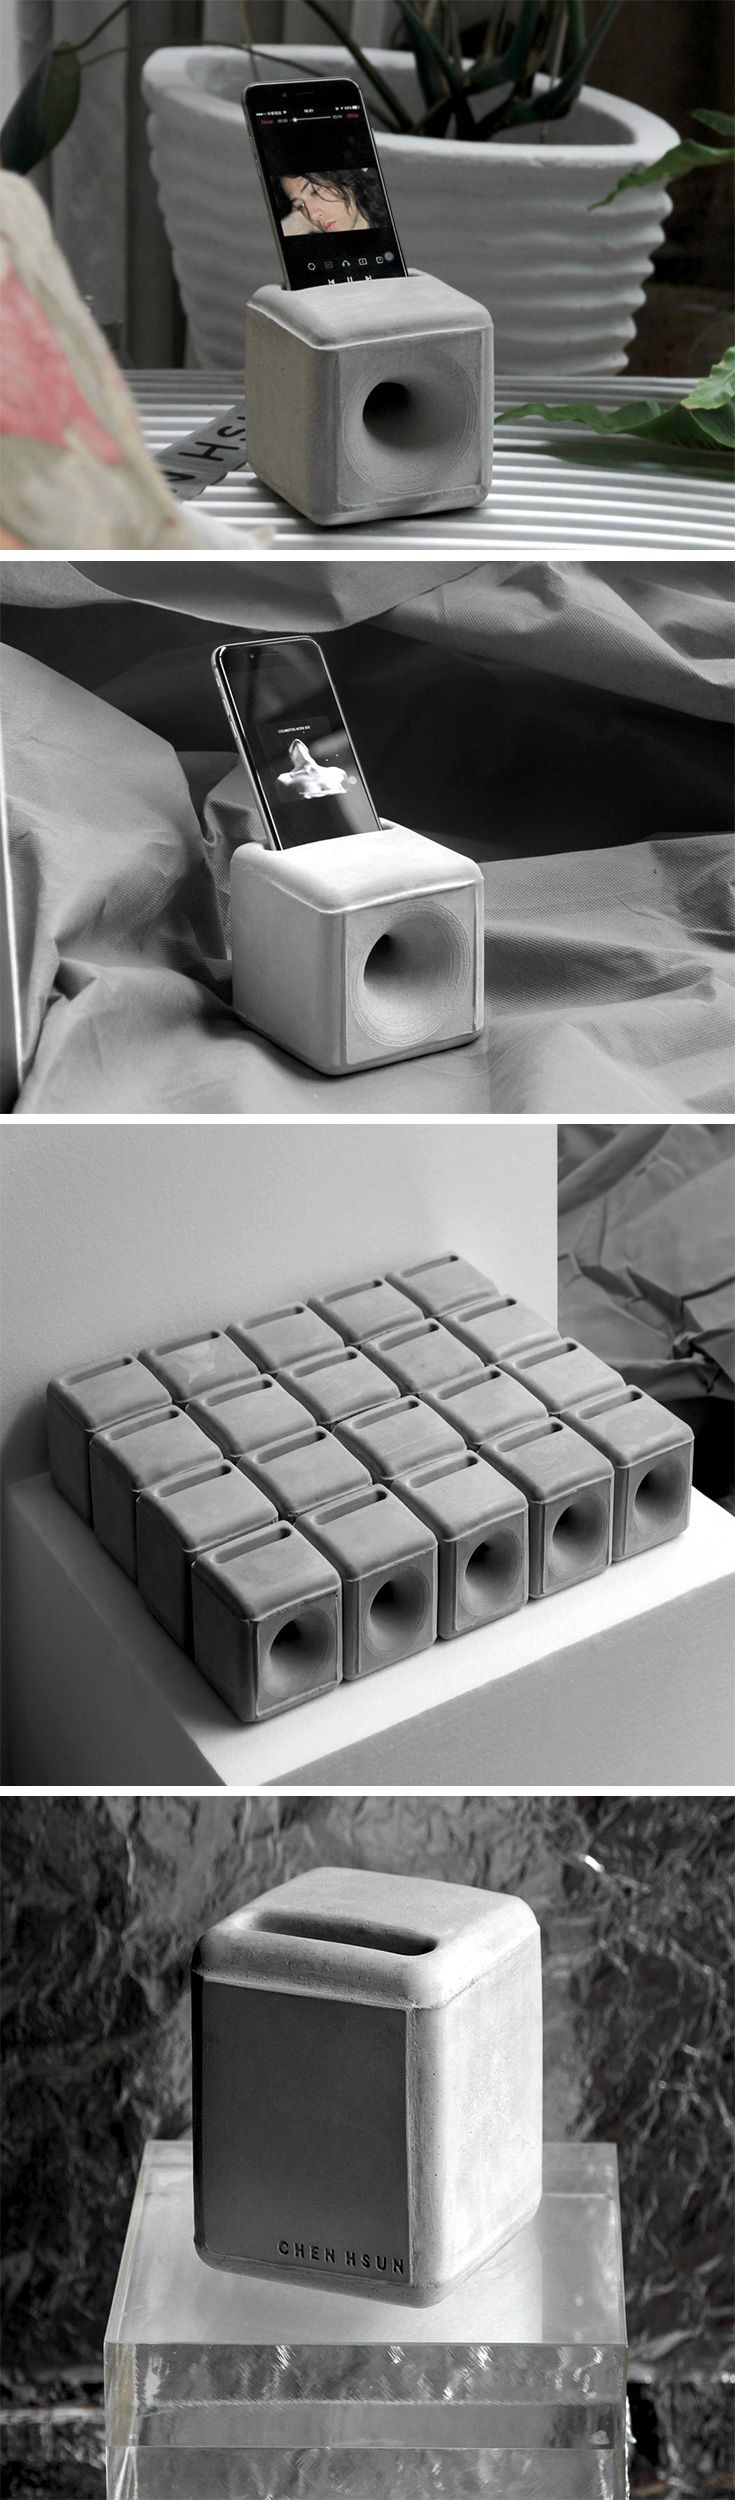 "You won't find any power cords, buttons, screws, or glue on this minimalistic music tool! It's called ""Le Bloc De Pierre"" and it's formed entirely of concrete. Designed for use with any 4.7″ iPhone, this cleverly crafted block is acoustically adapted to amplify sound from your phone's speaker up to 50%! Unlike true speakers, it's almost unrecognizable as an amplifier and makes for a sculptural accent to your desk, countertop, den, bathroom or kitchen."